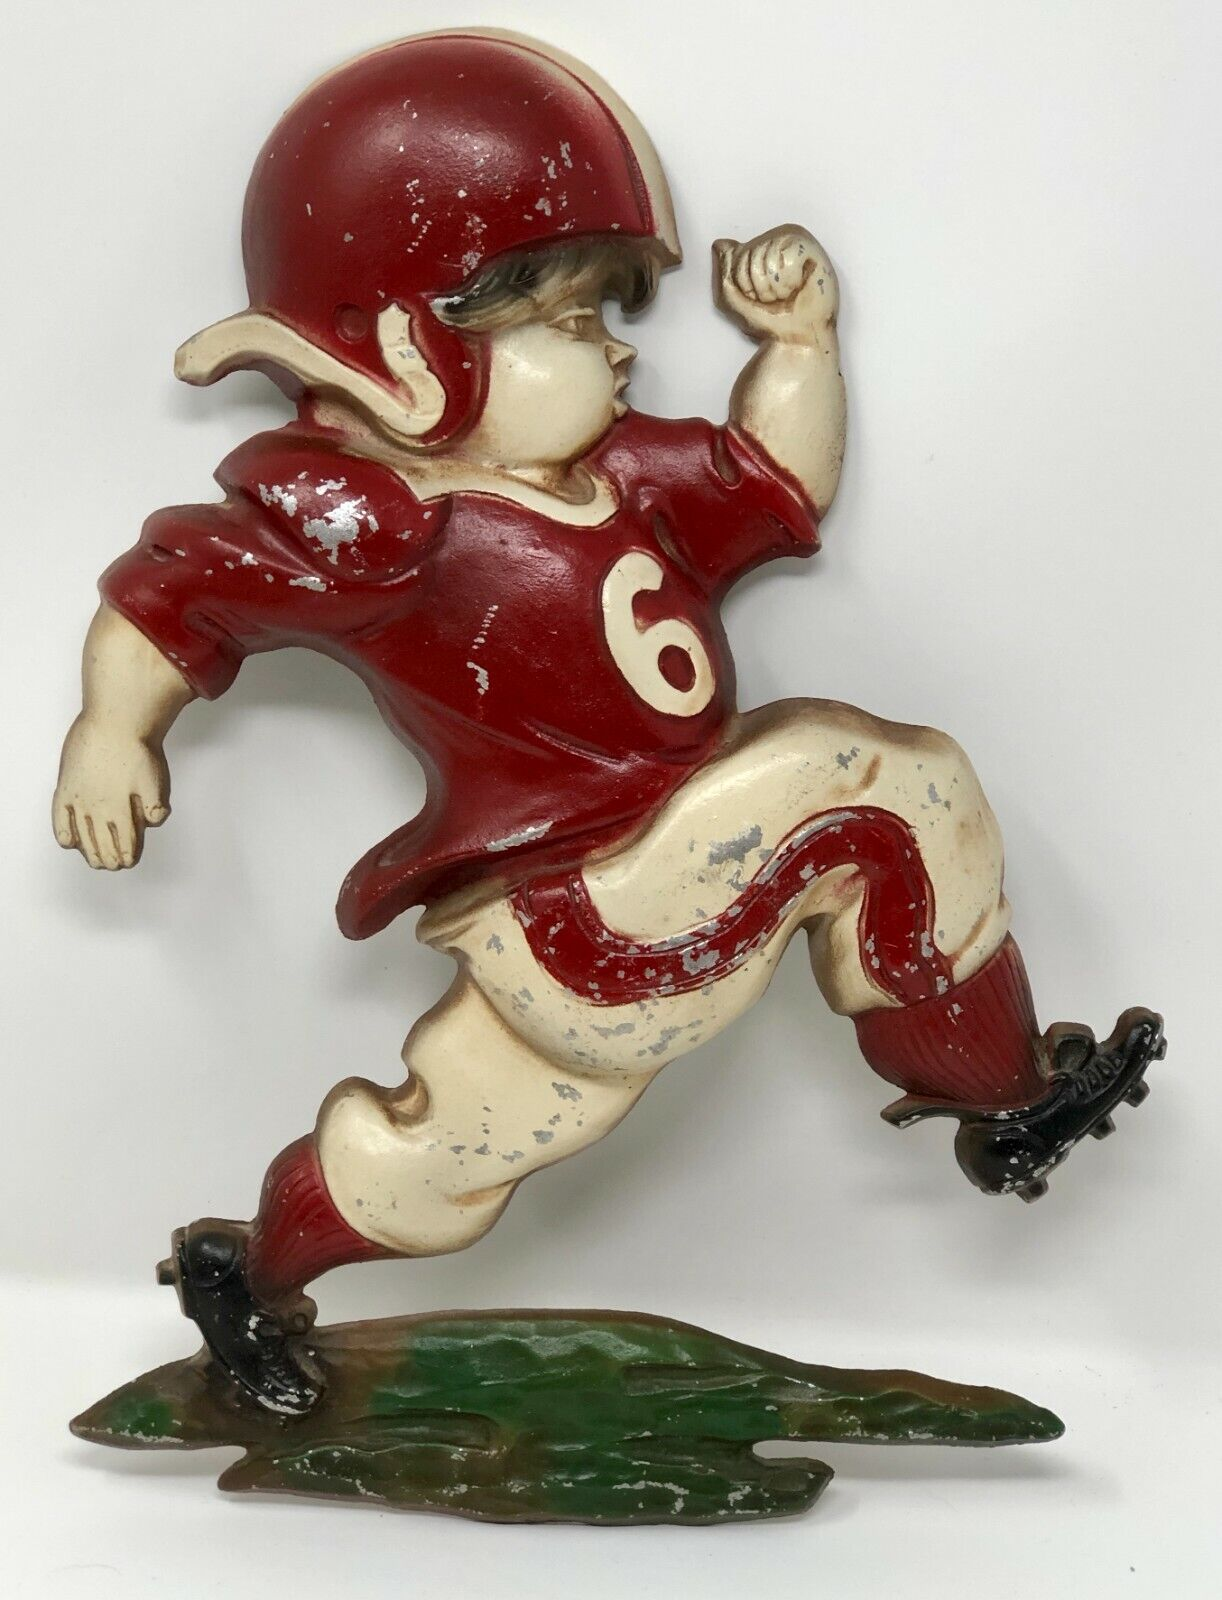 Sexton 1970 Football Player #6 Metal Plaques Sports Vintage Wall Decorations